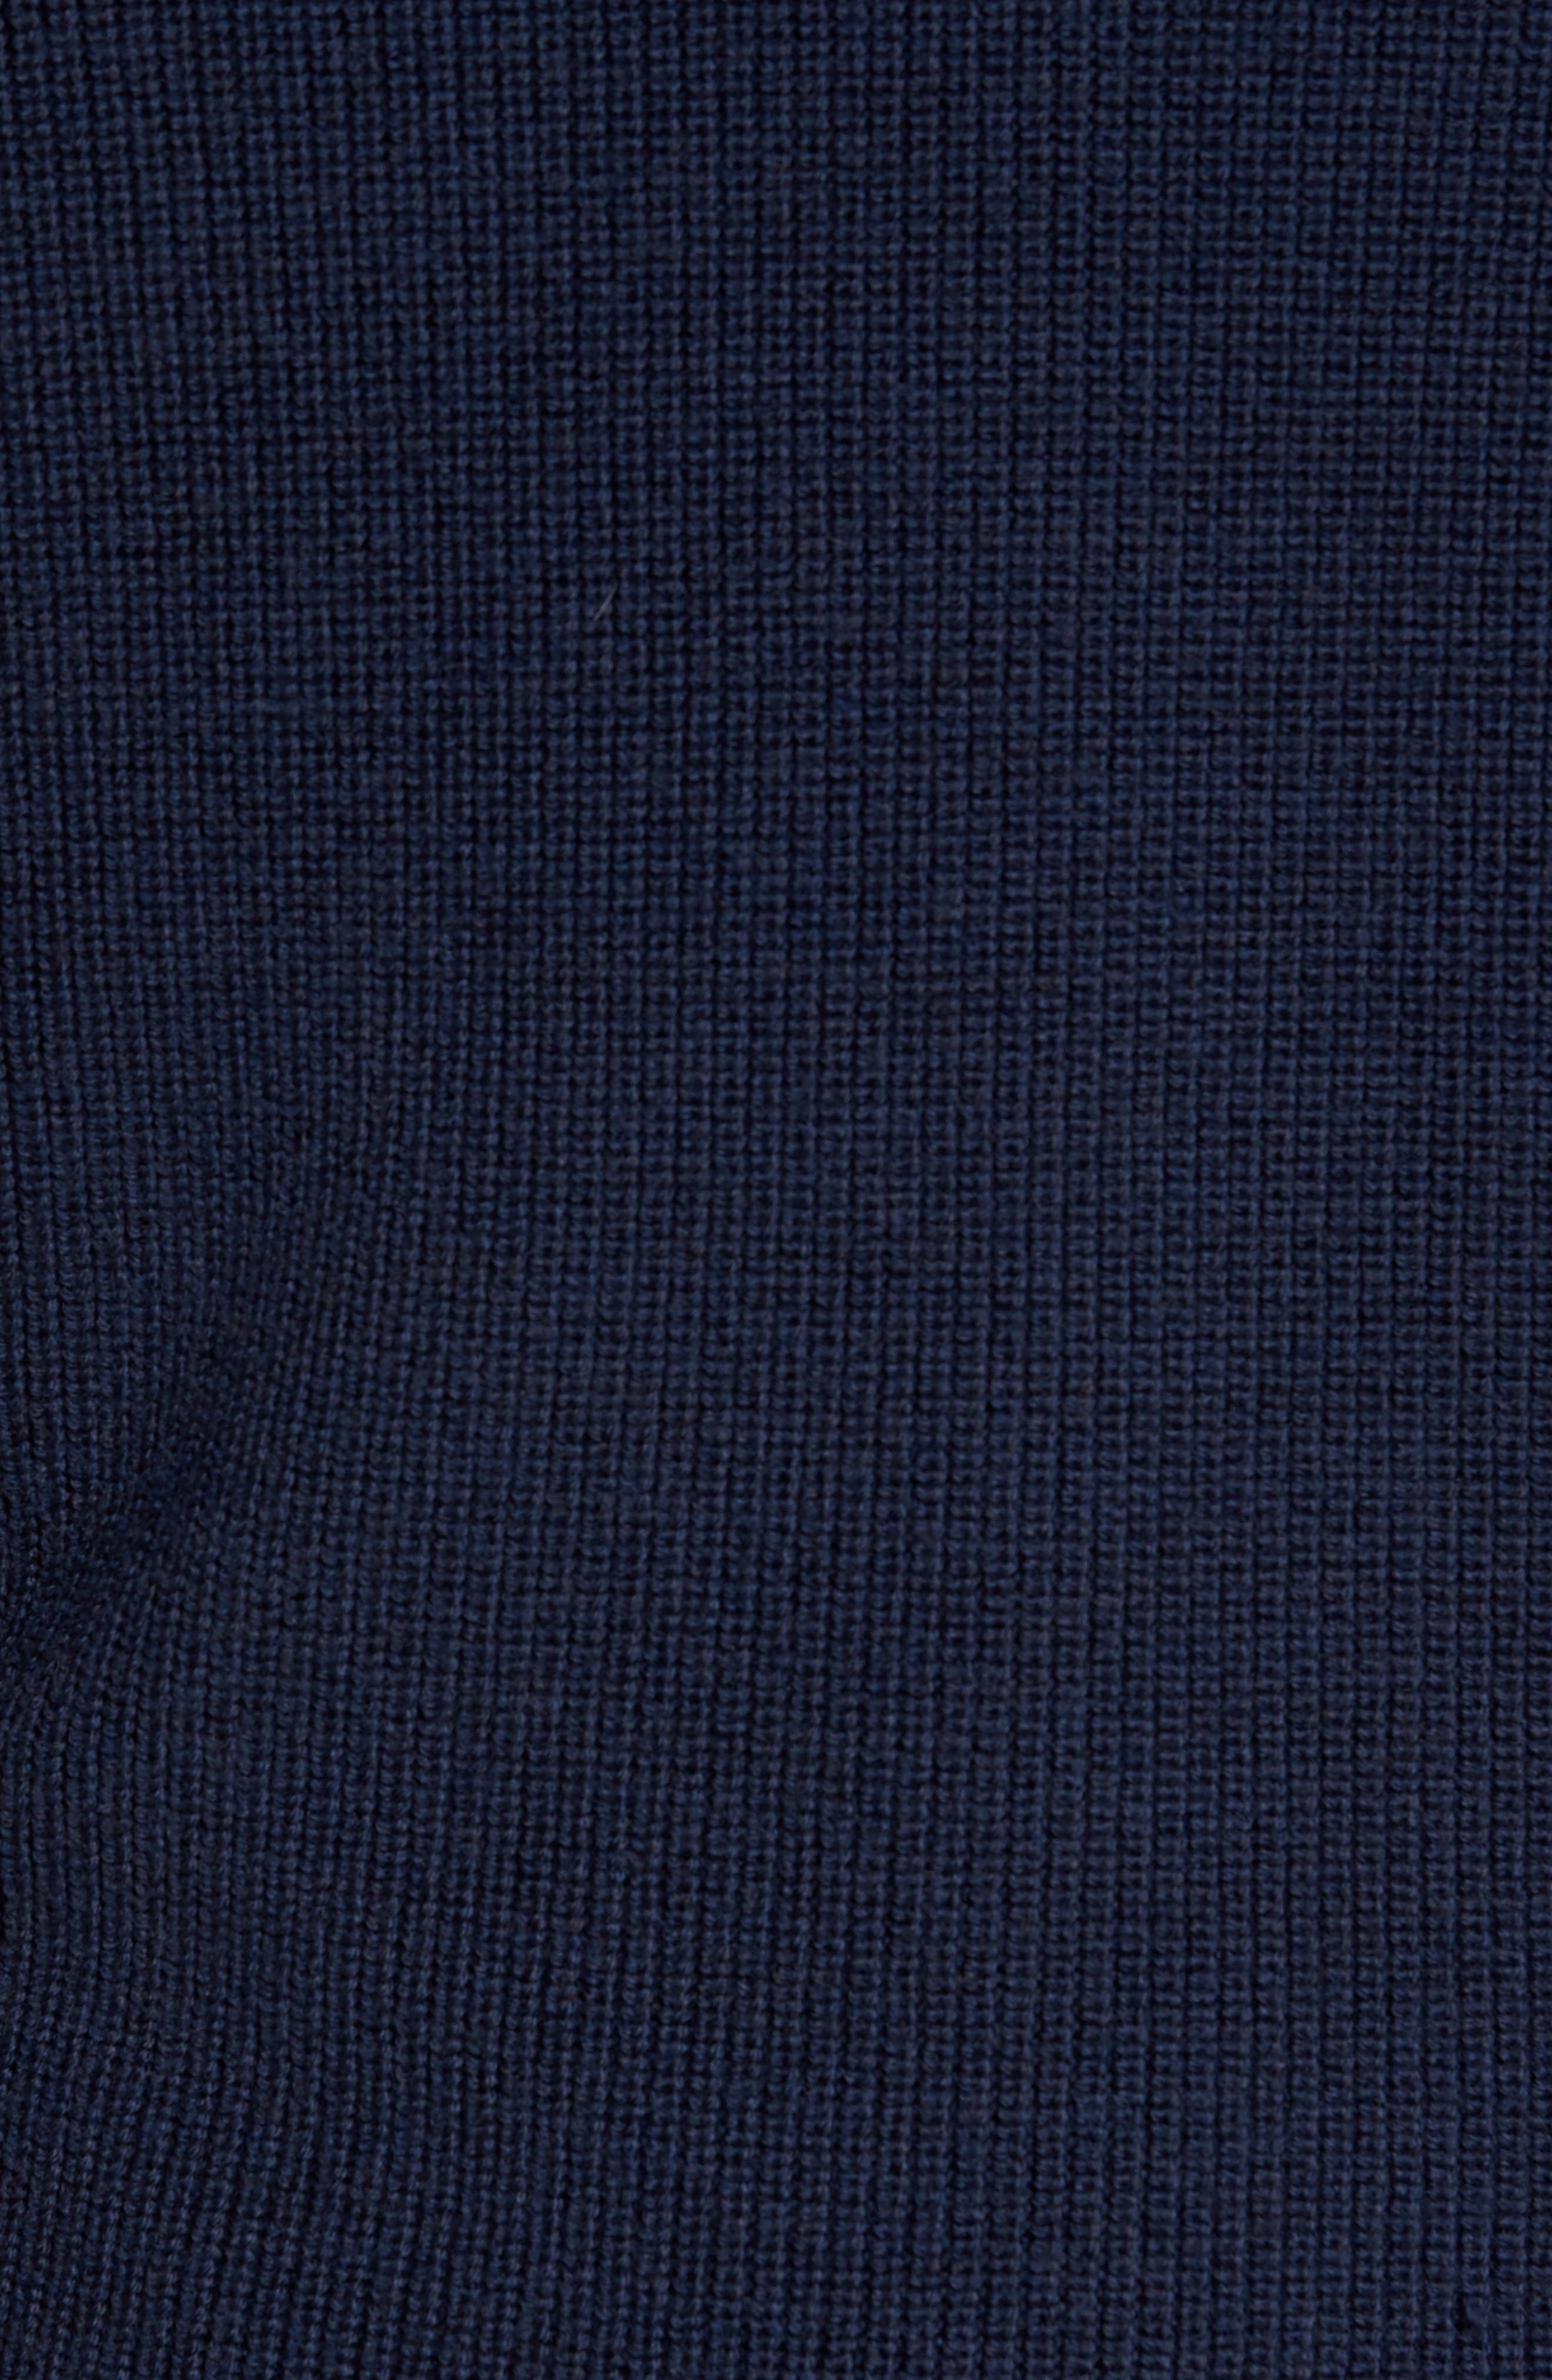 Charlesworth Suede Patch Merino Wool Sweater,                             Alternate thumbnail 5, color,                             432